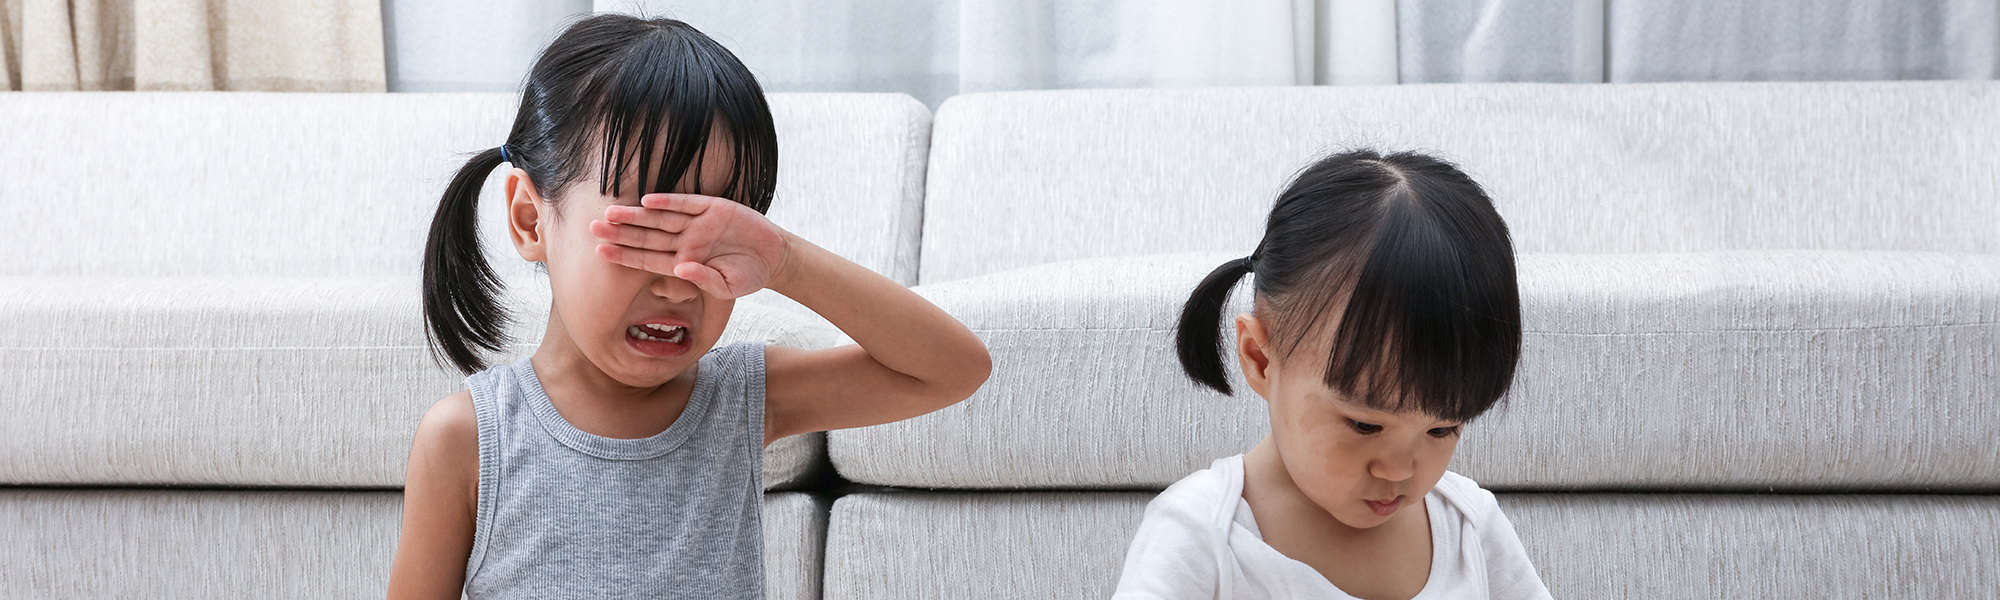 How to Stop Sibling Rivalry and Have a More Peaceful Home